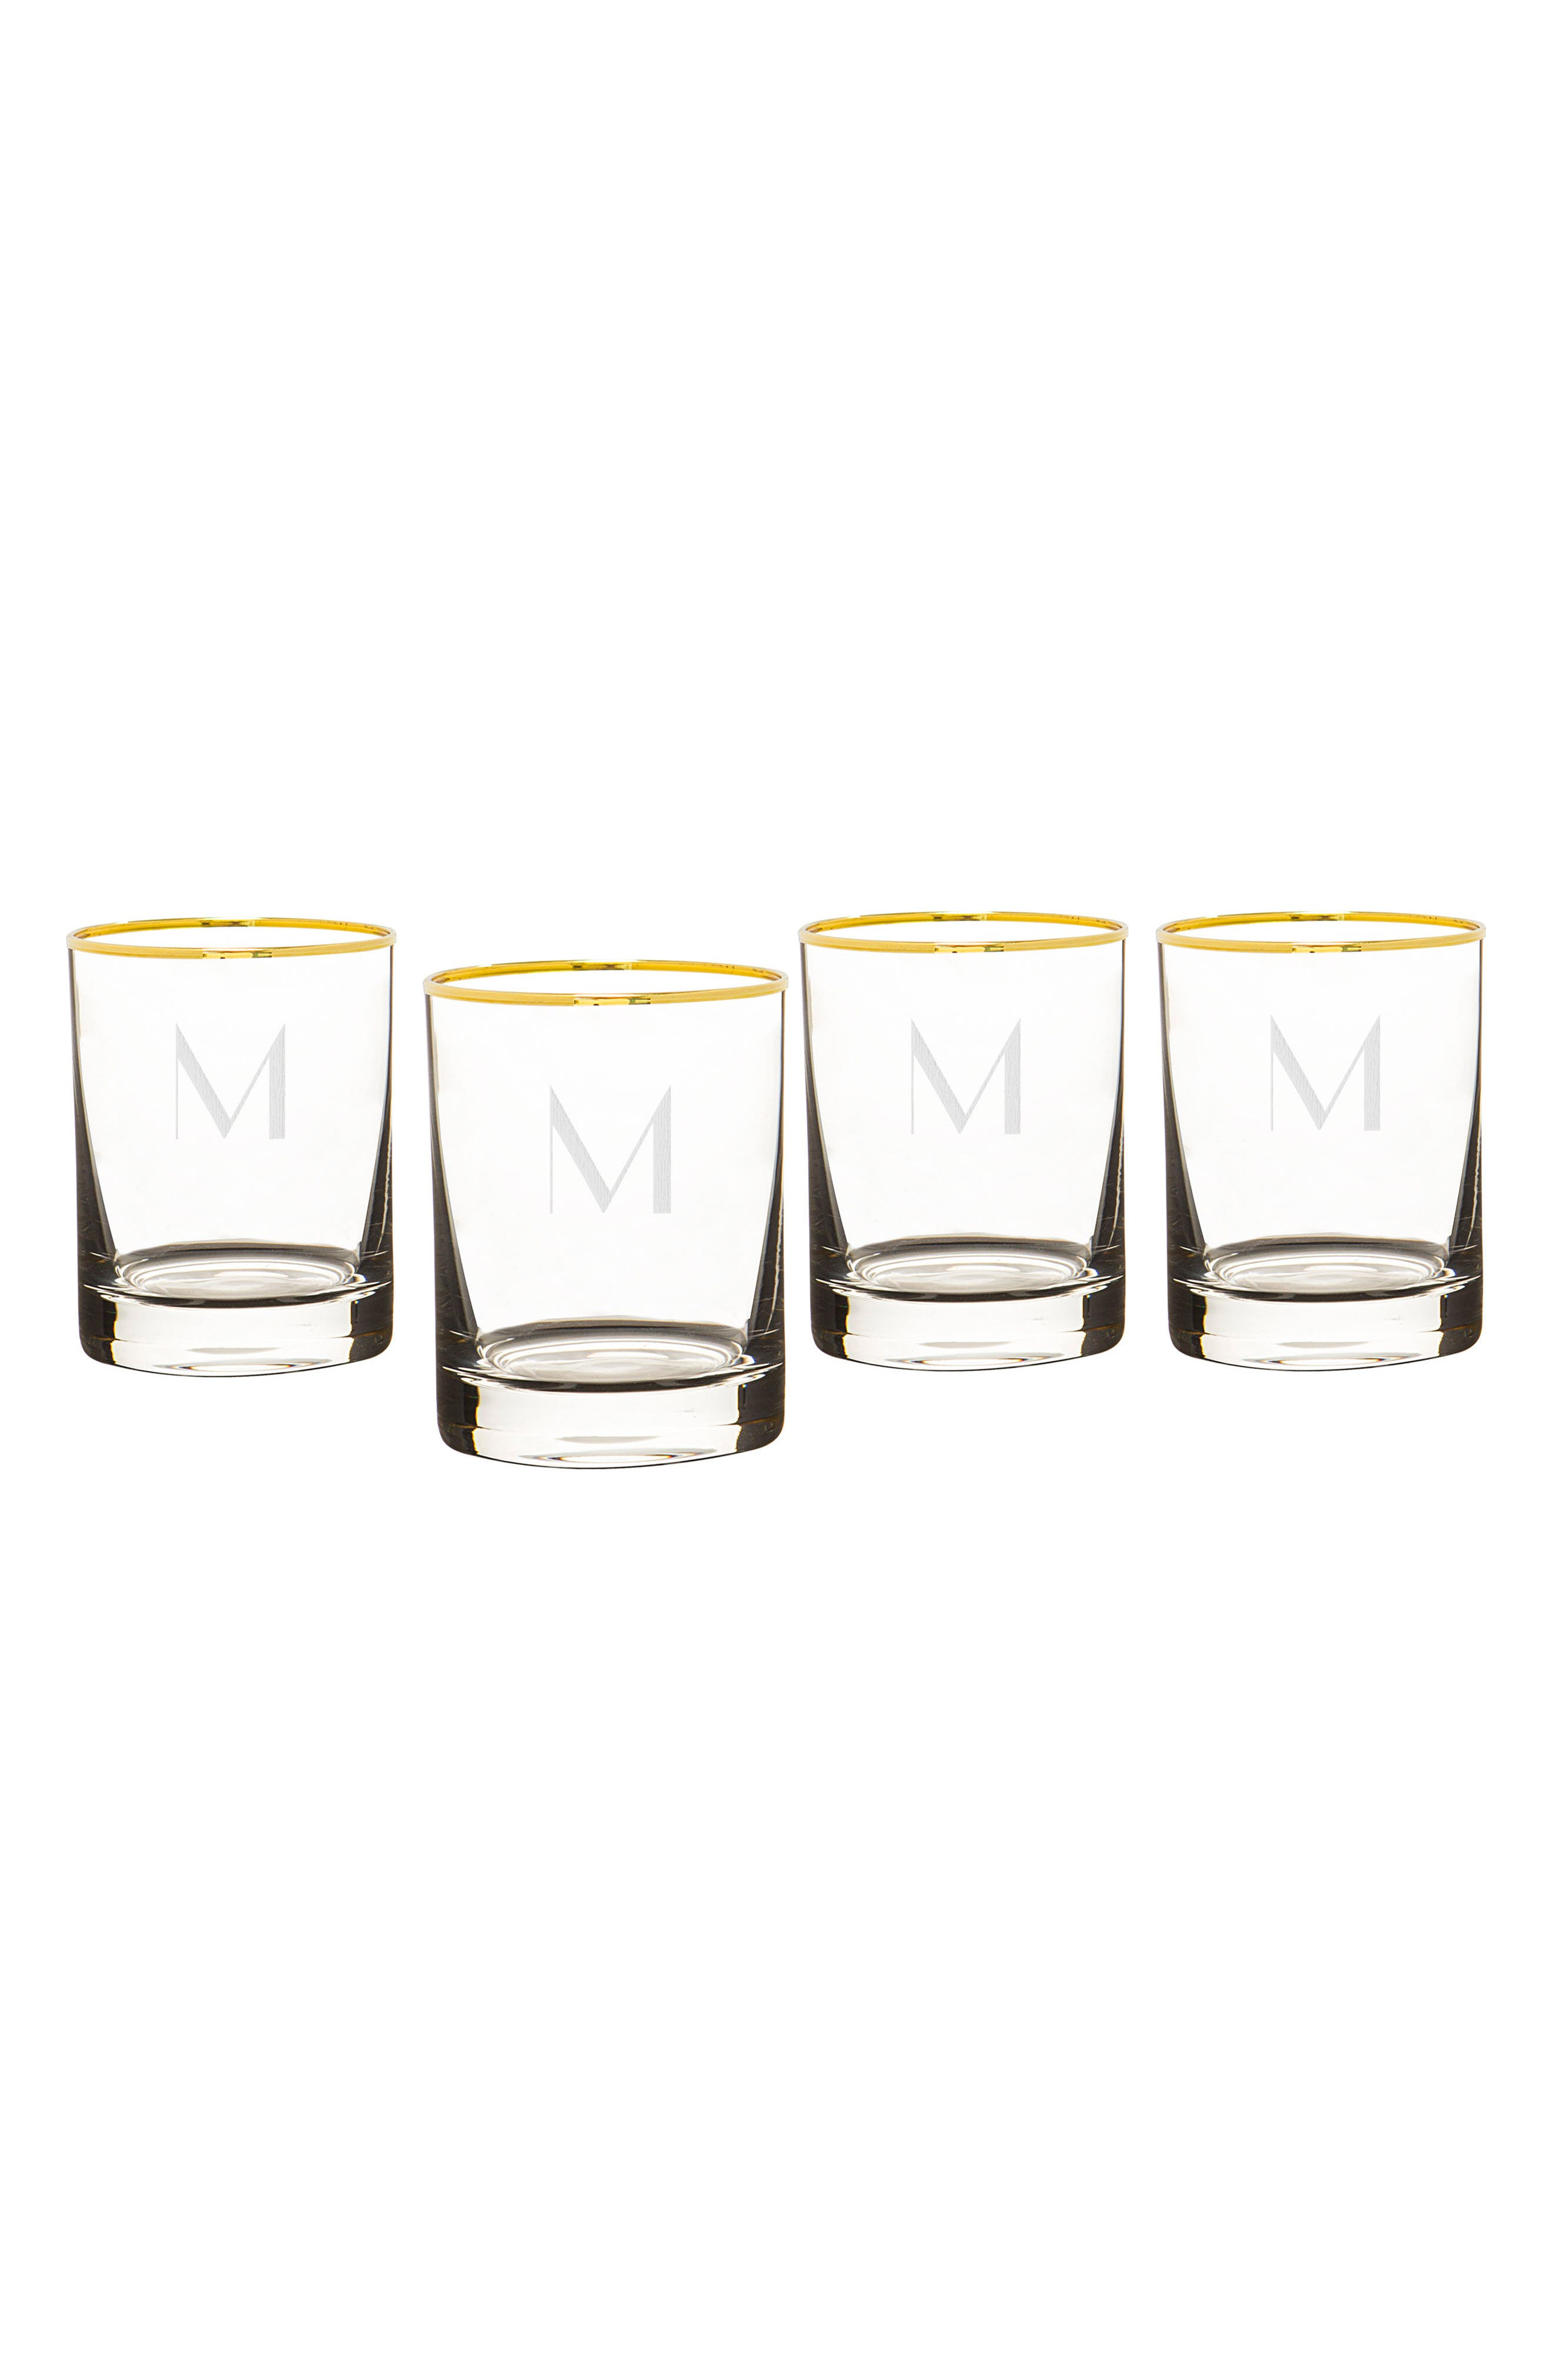 Monogram Set of 4 Double Old Fashioned Glasses,                             Main thumbnail 14, color,